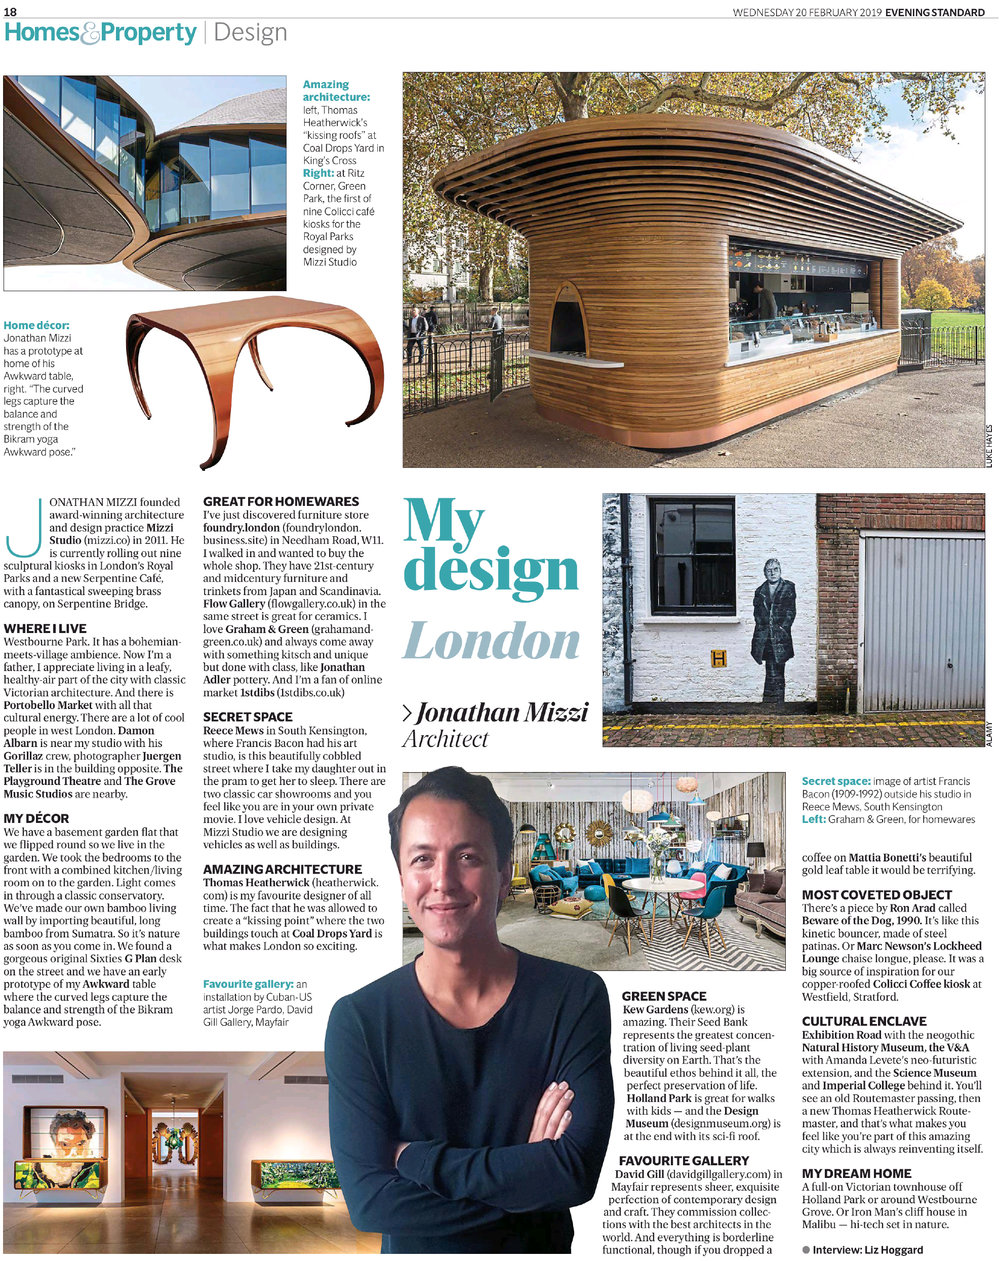 Jonathan Mizzi interview with Liz Hoggard for 'My Design London' in the Evening Standard, February 2019